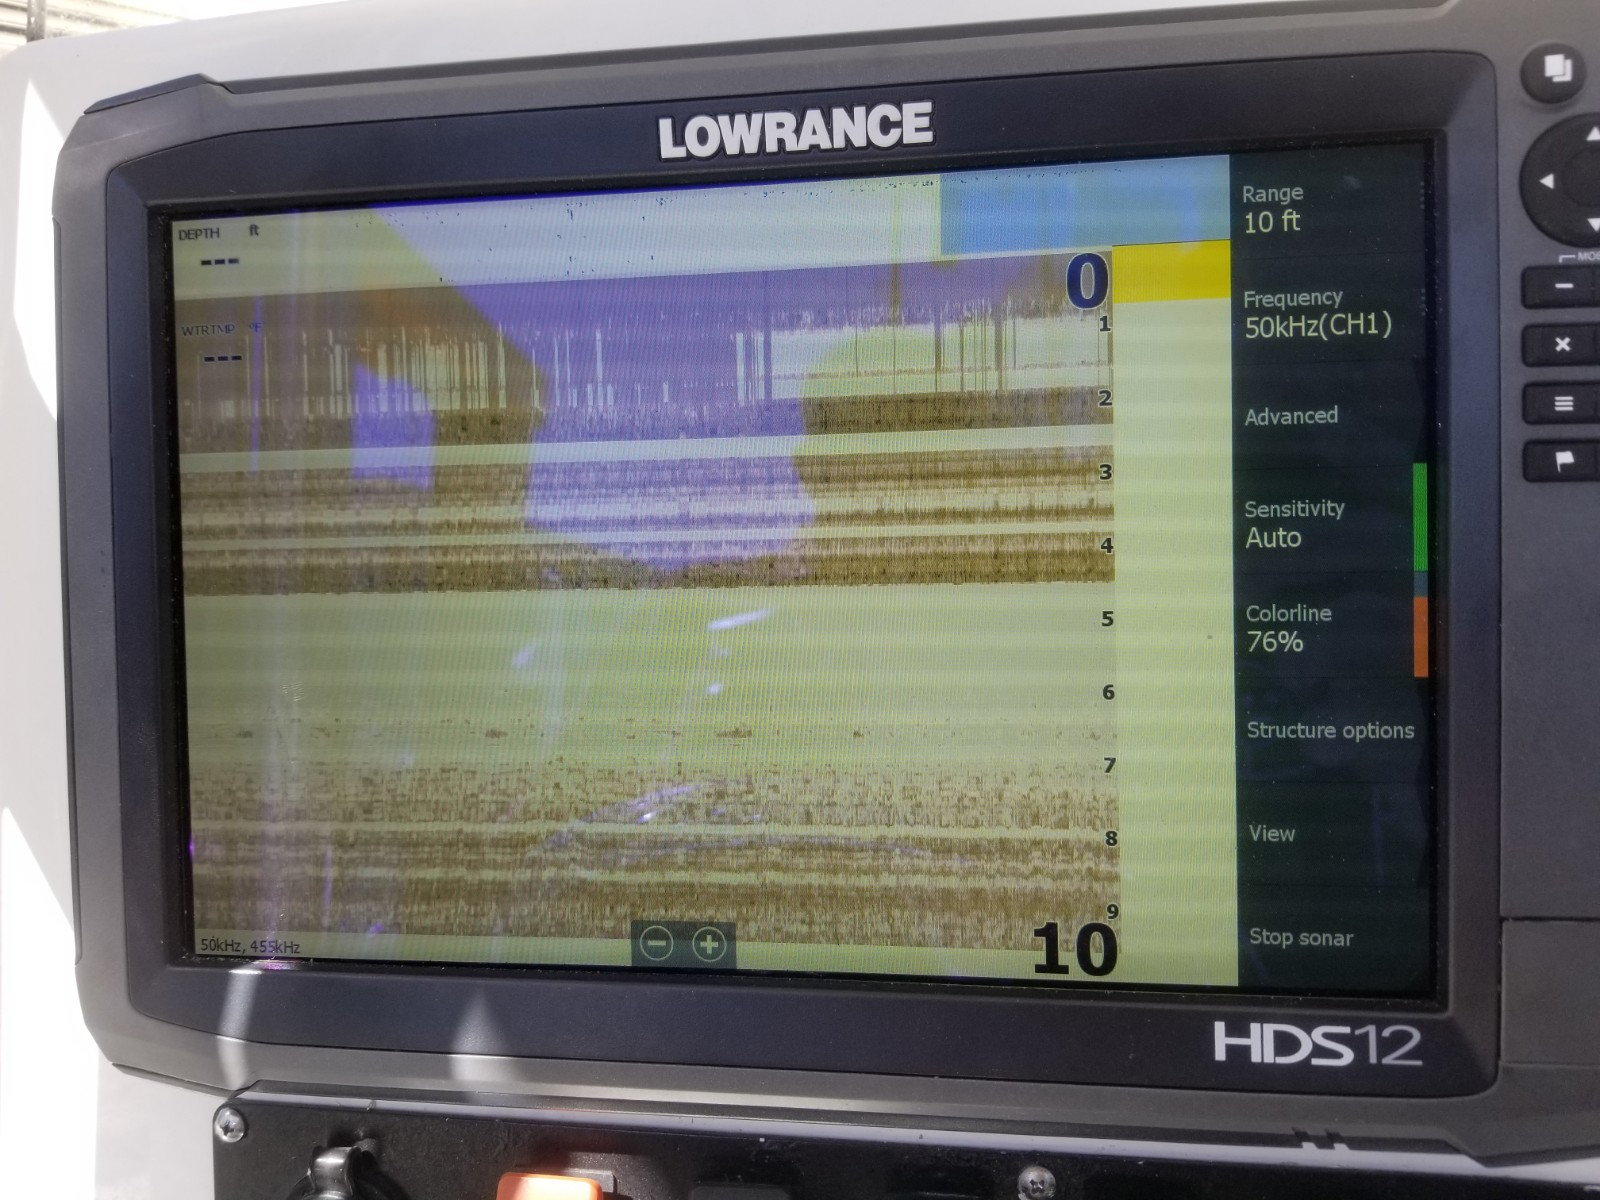 HDS12 Gen3, lost my Sonar Settings after StructureScan install - The